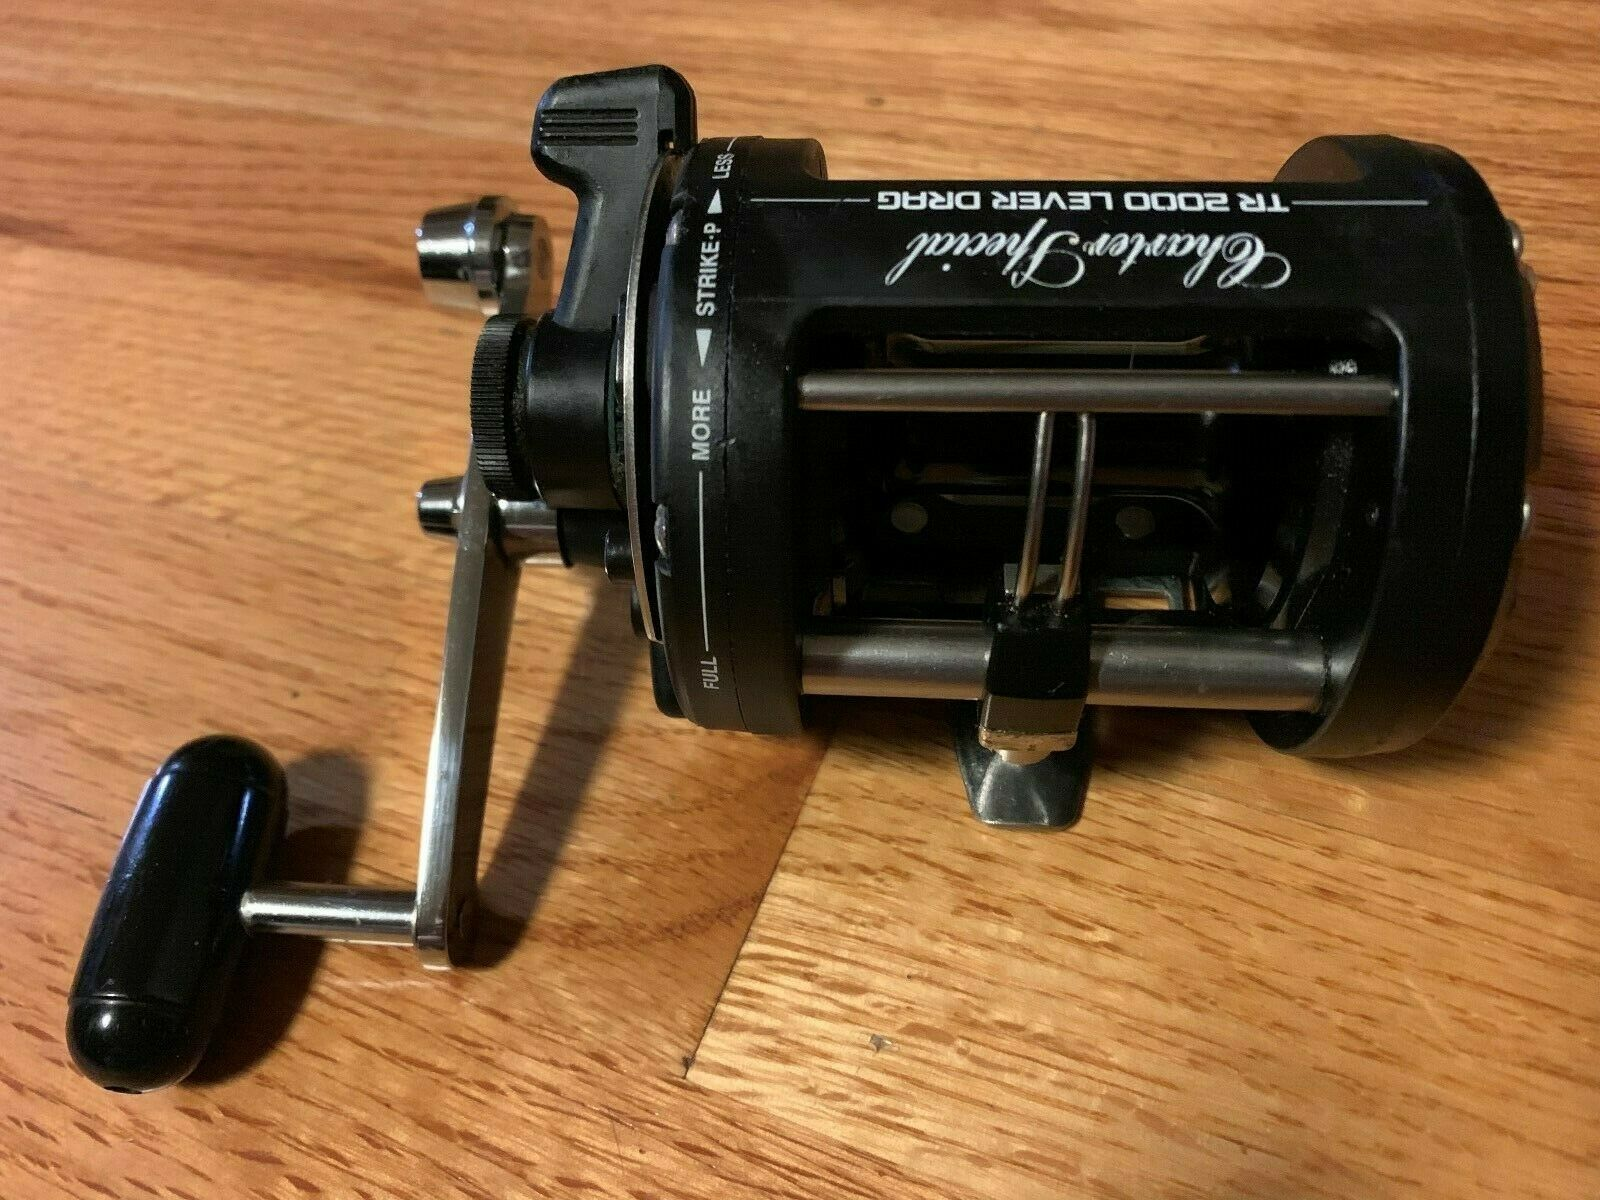 Shiuomoo Charter specialee TR 2000 Lever Drag Conventional Reel